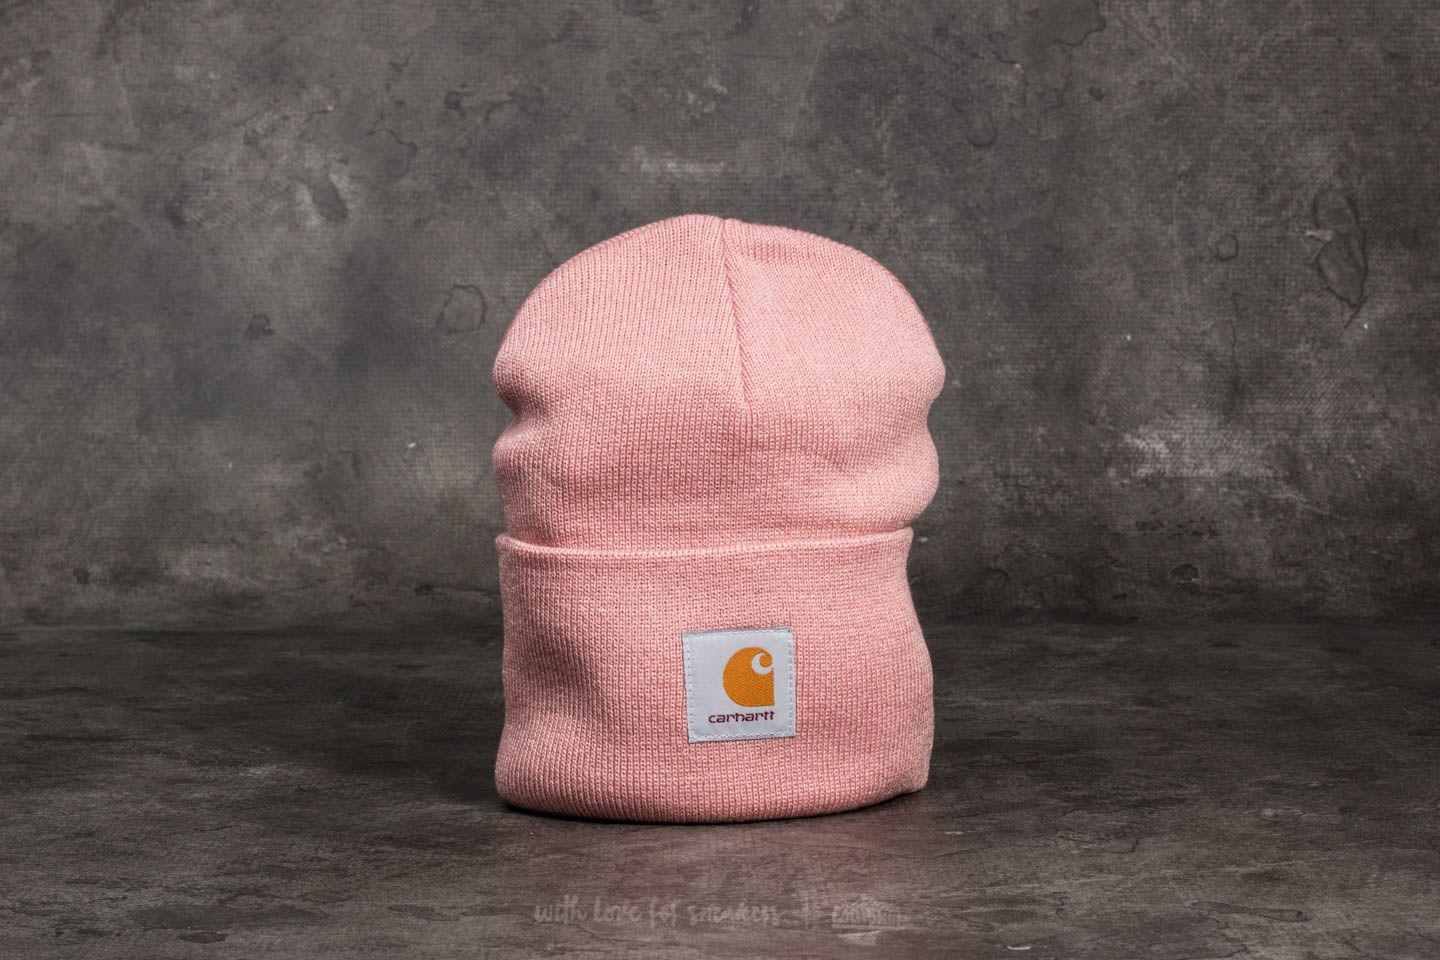 69b36dcf264d2 Carhartt WIP Acrylic Watch Hat Soft Rose in Pink - Lyst